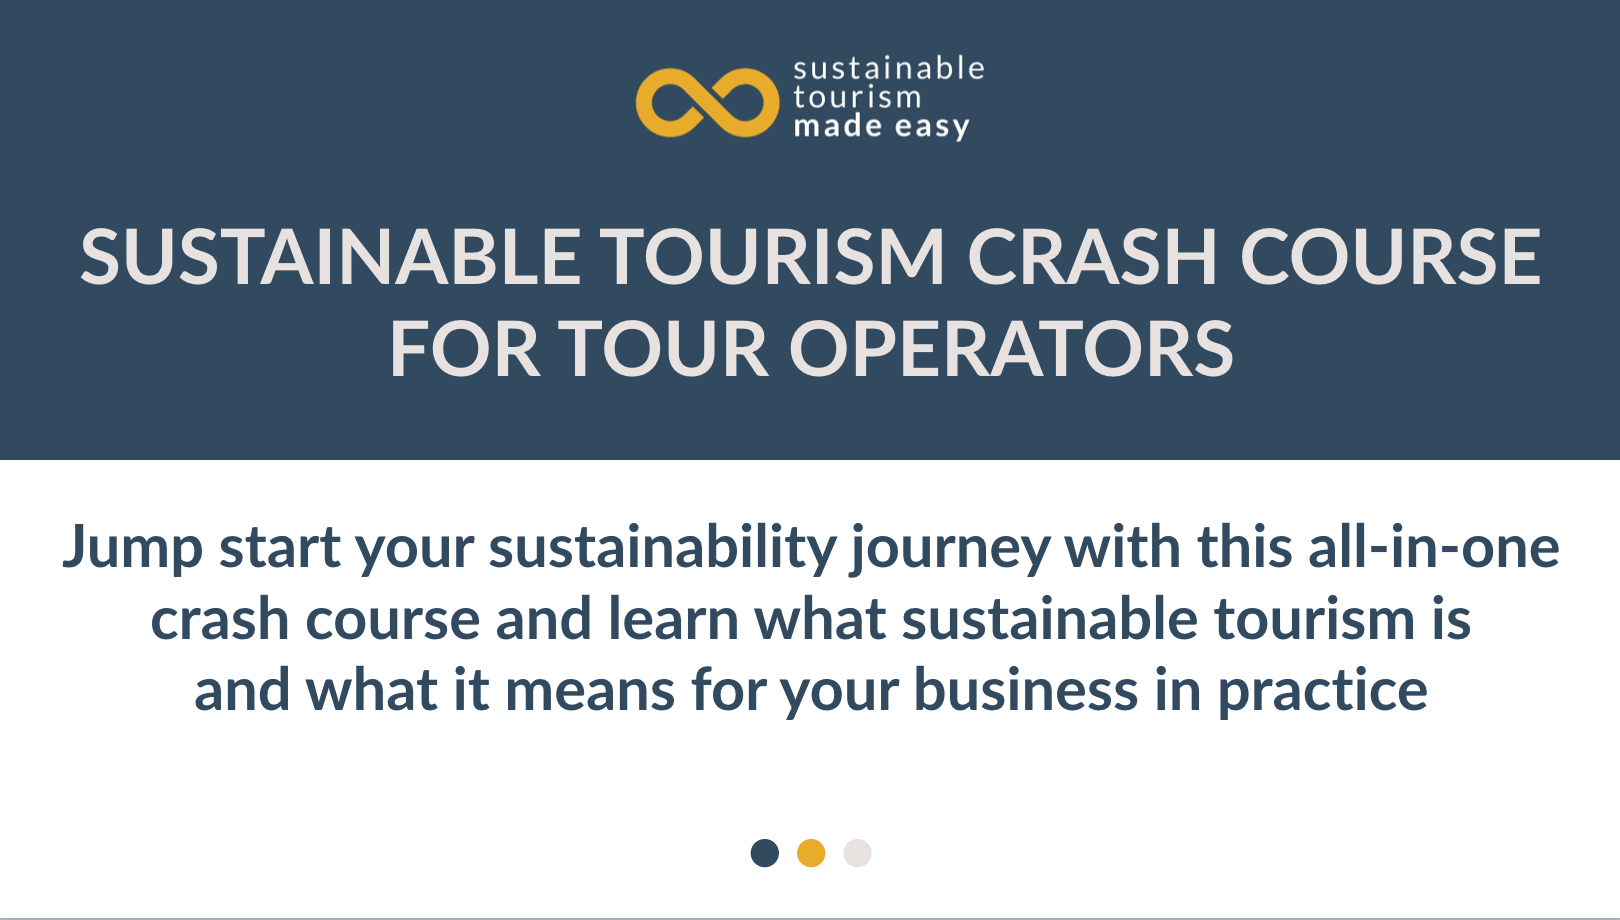 Sustainable tourism crash course for tour operators